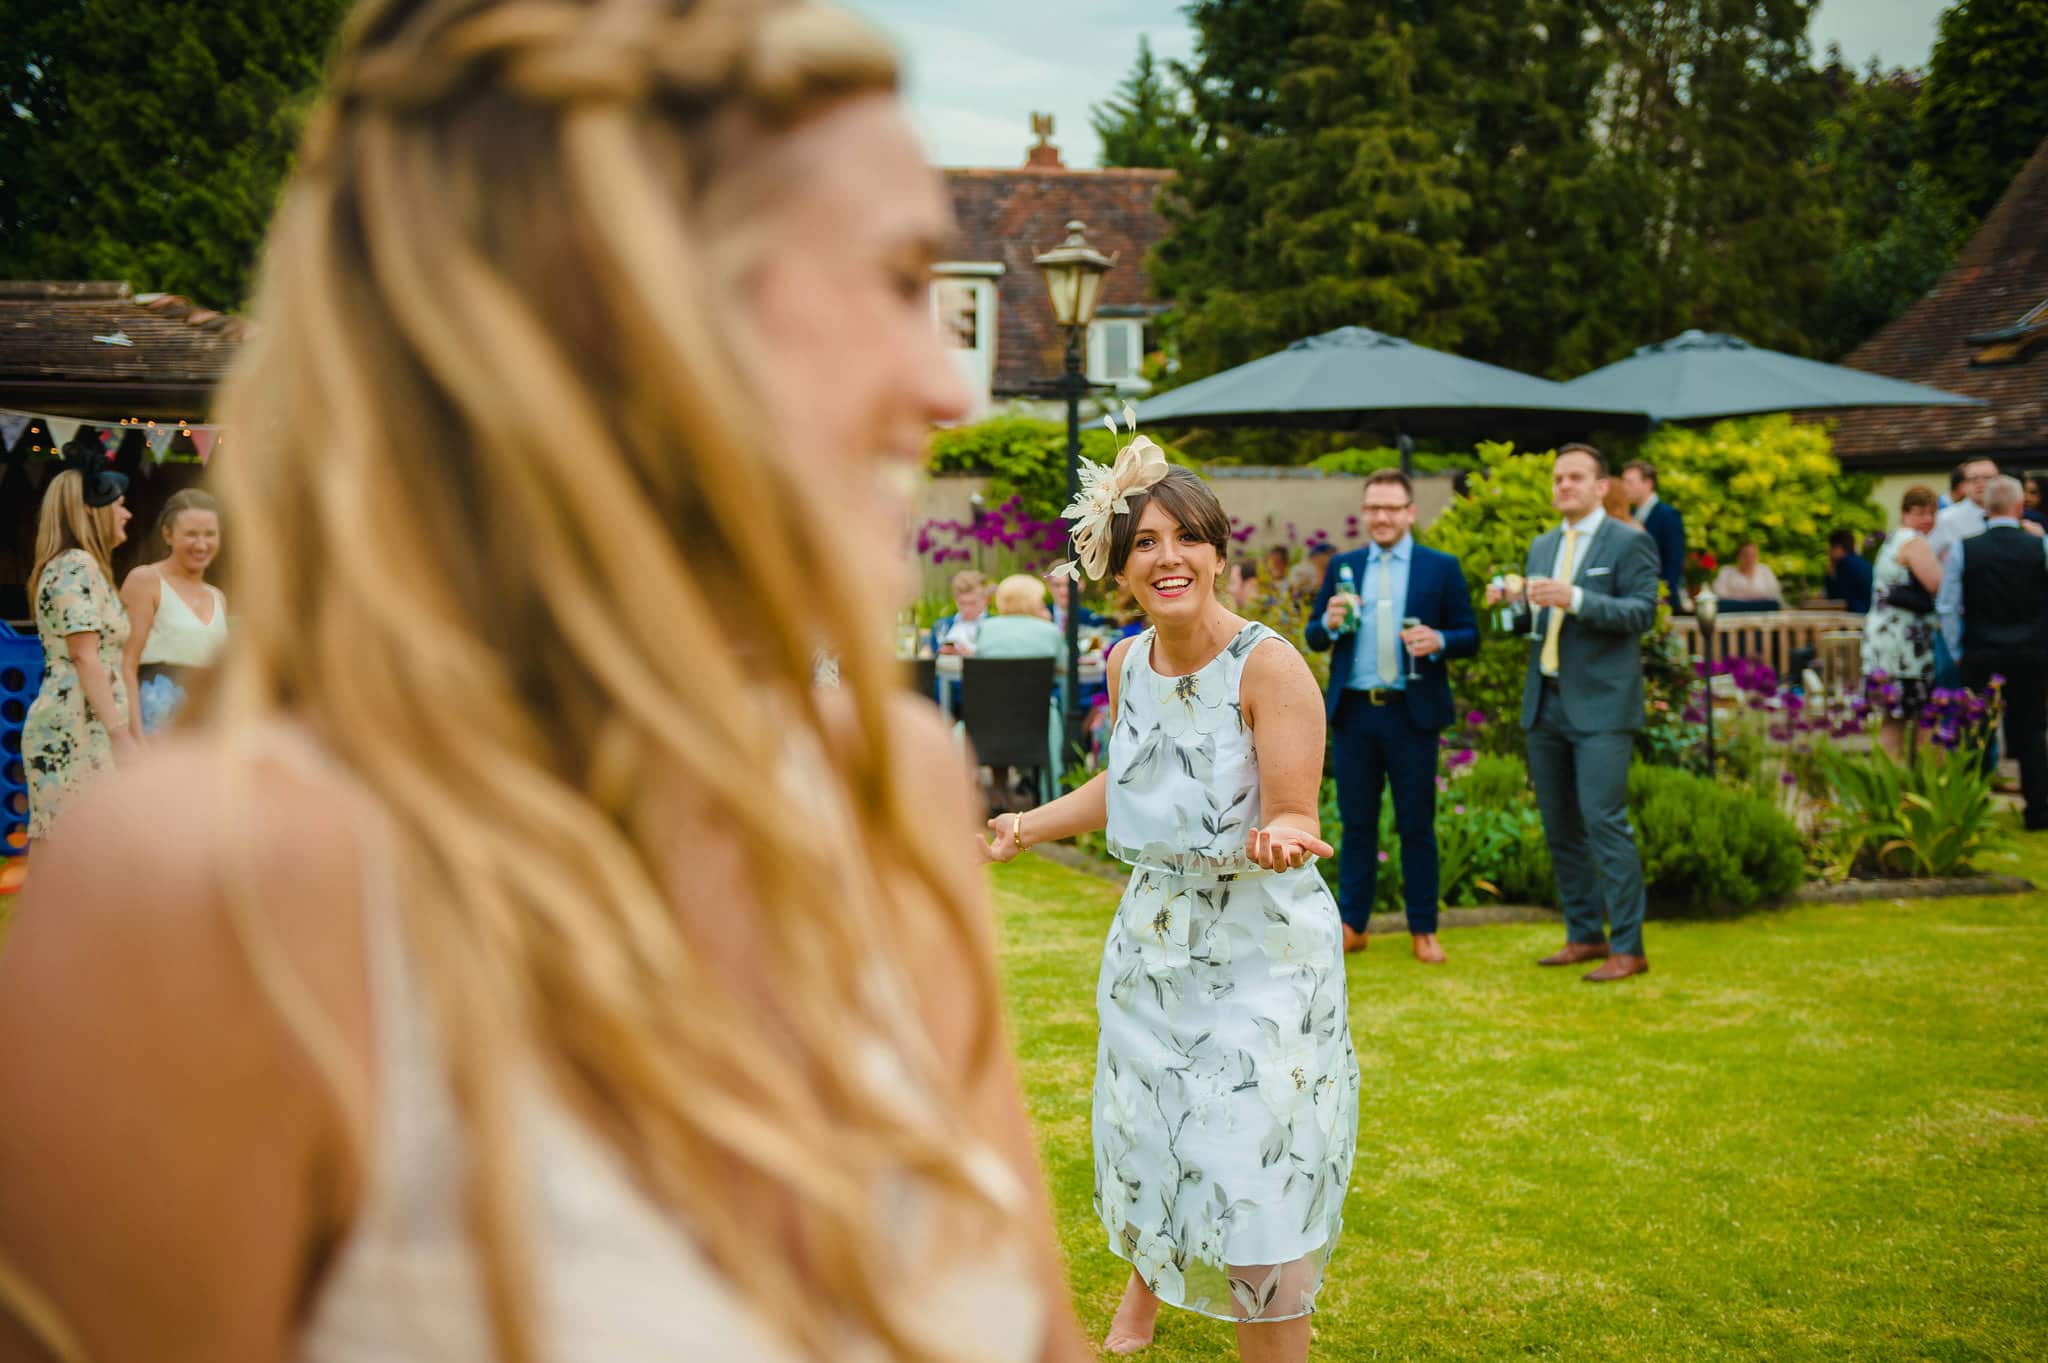 wedding at redhouse barn 201 - Wedding at Redhouse Barn in Stoke Prior, Worcestershire